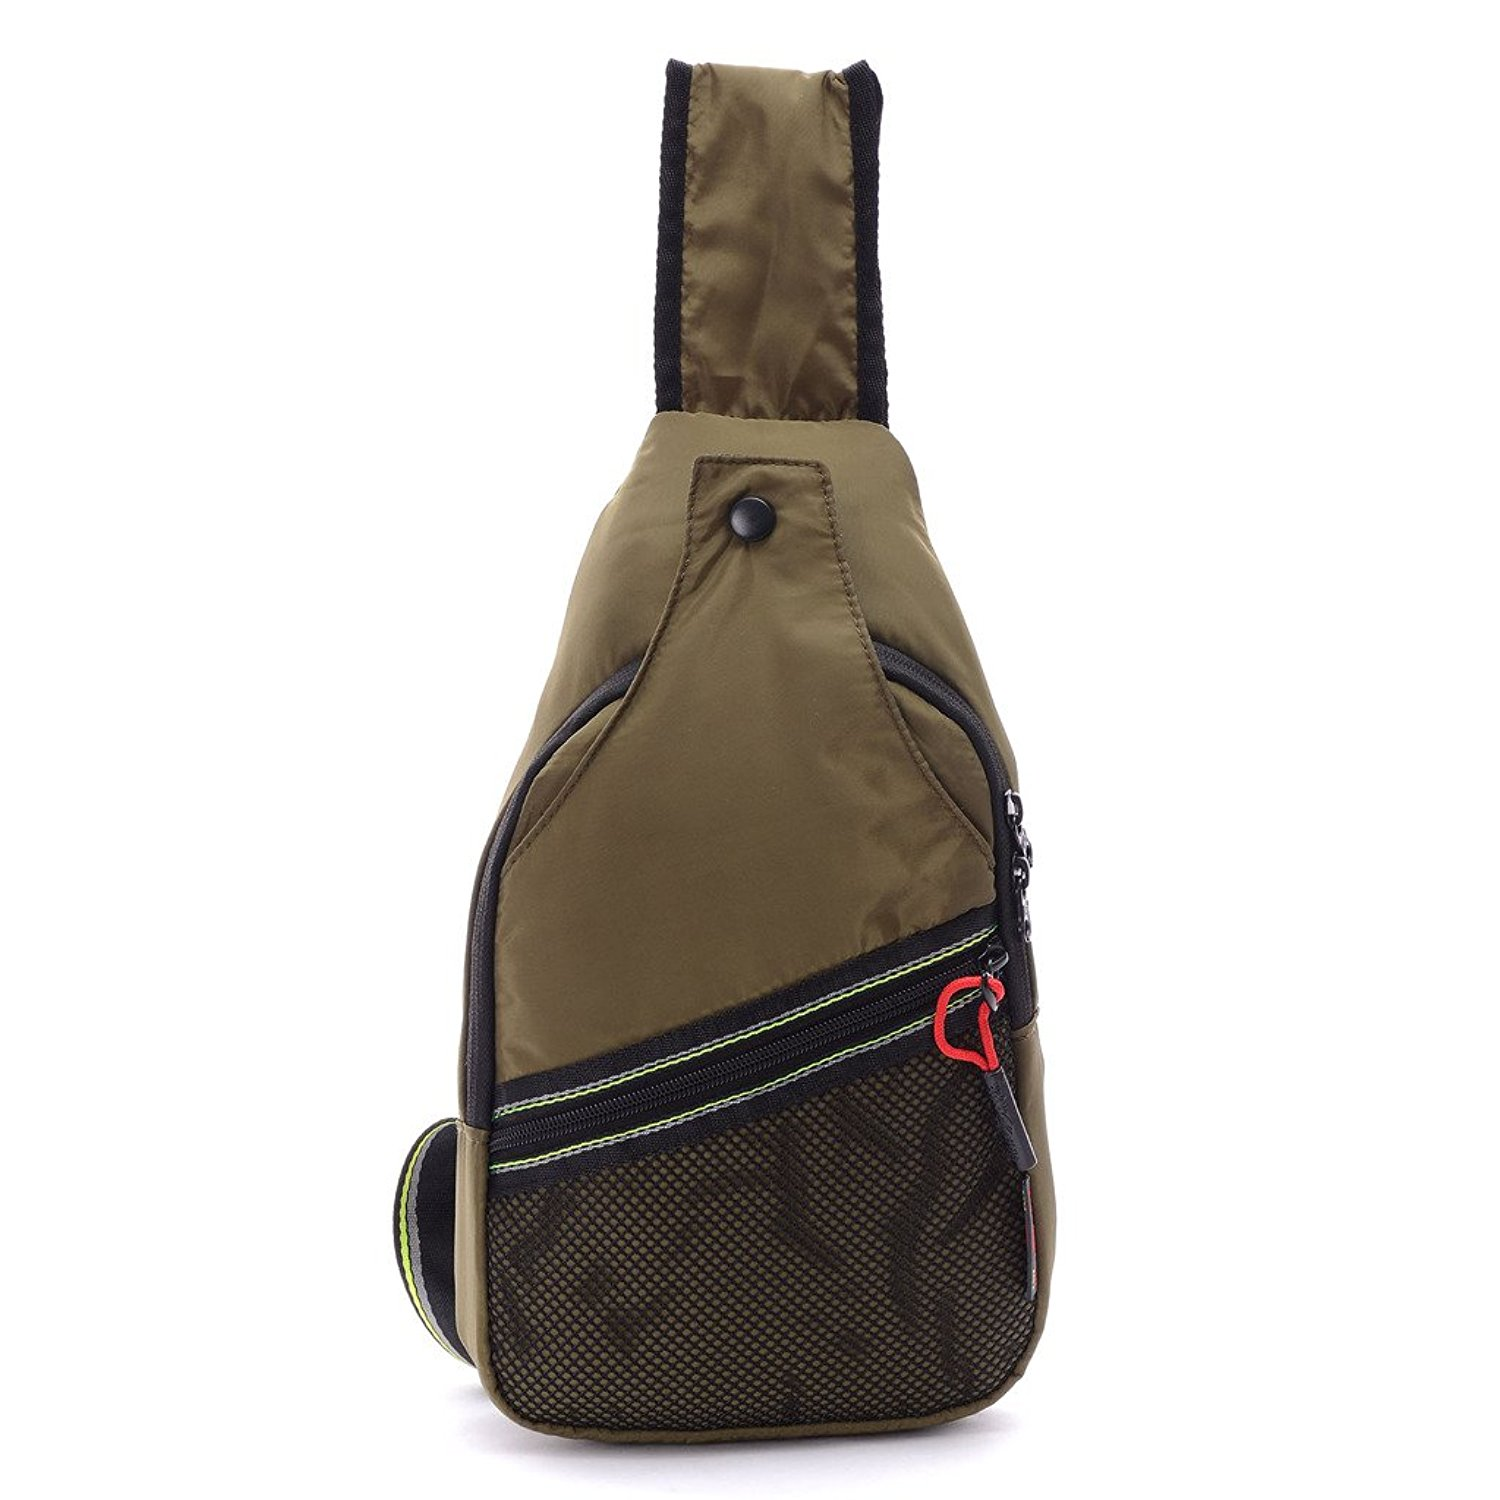 db0fb88bf4 Get Quotations · Packable Nylon Sling Bag Small Shoulder Backpack Cross  Body Backpack for Men Women